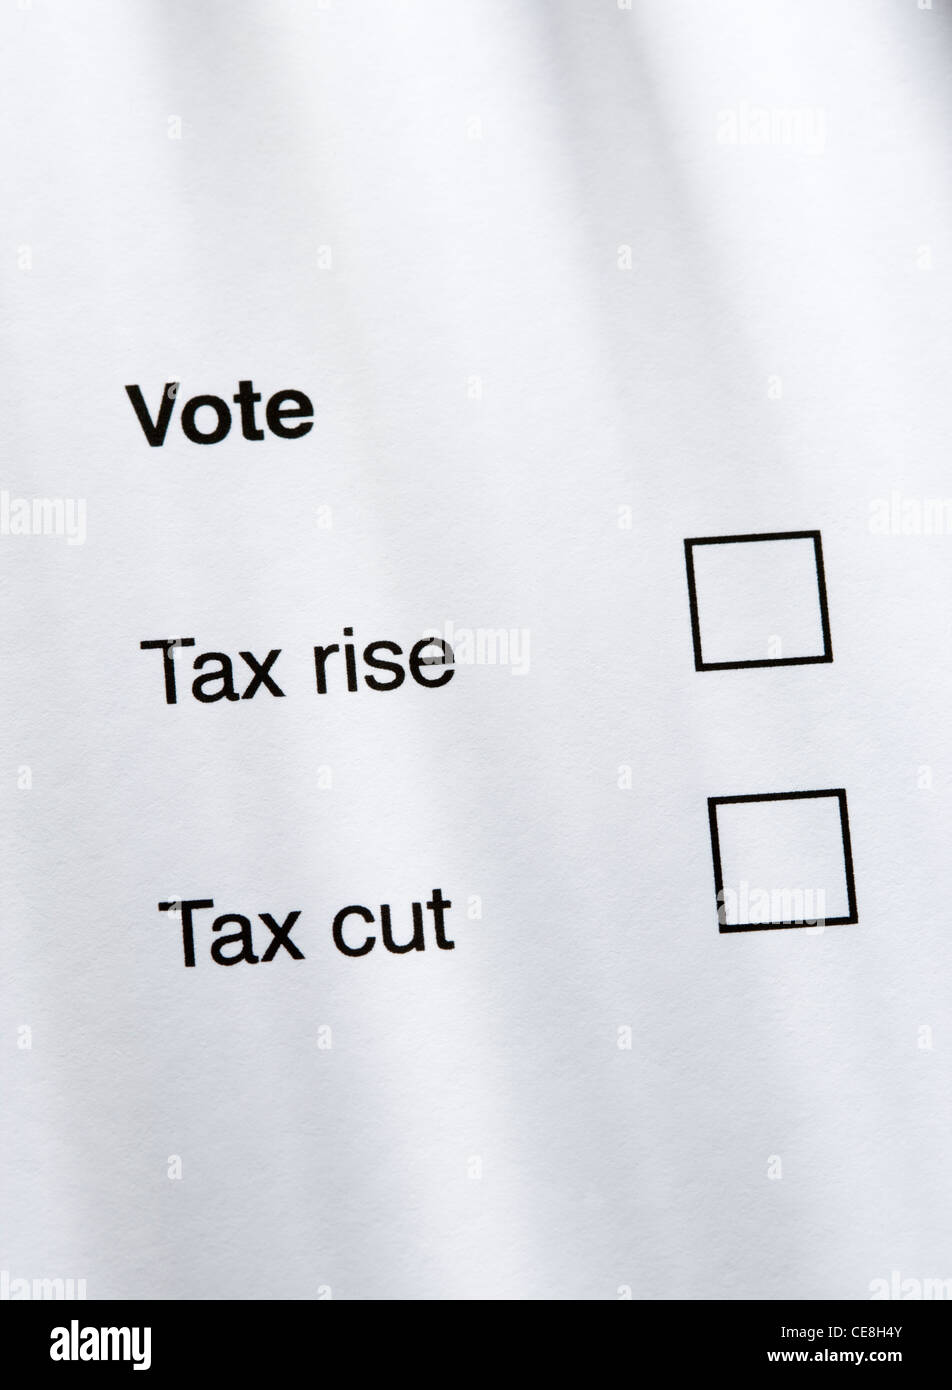 Tax rise or tax cut concept. - Stock Image